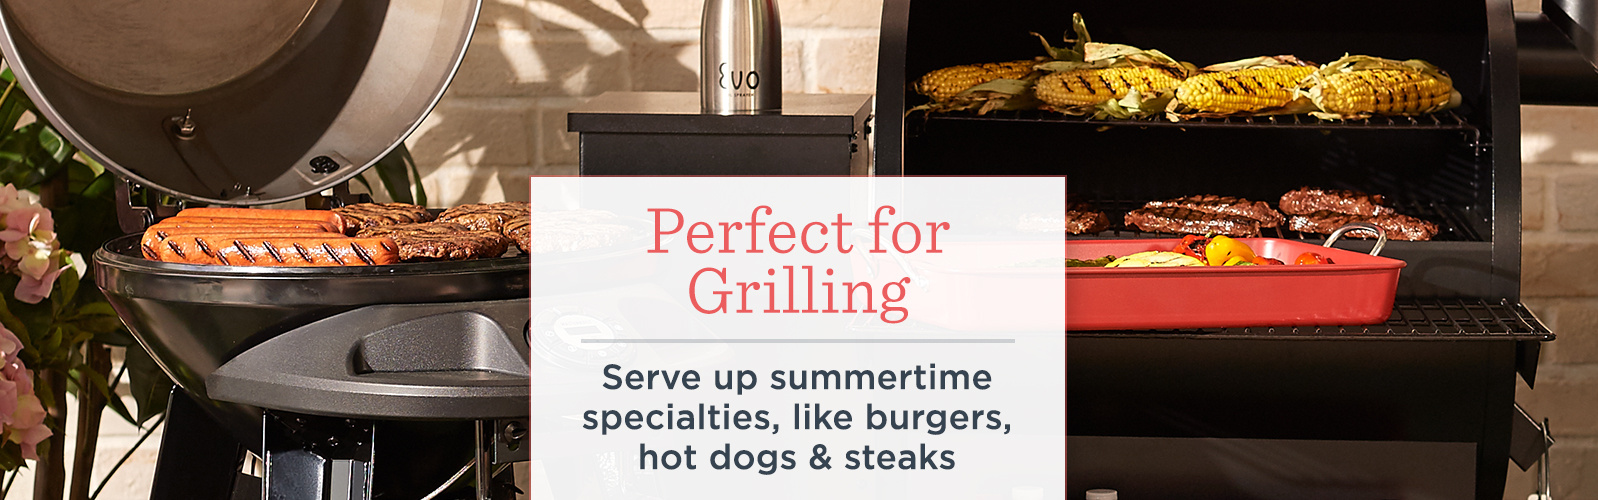 Perfect for Grilling.  Serve up summertime specialties, like burgers, hot dogs & steaks.